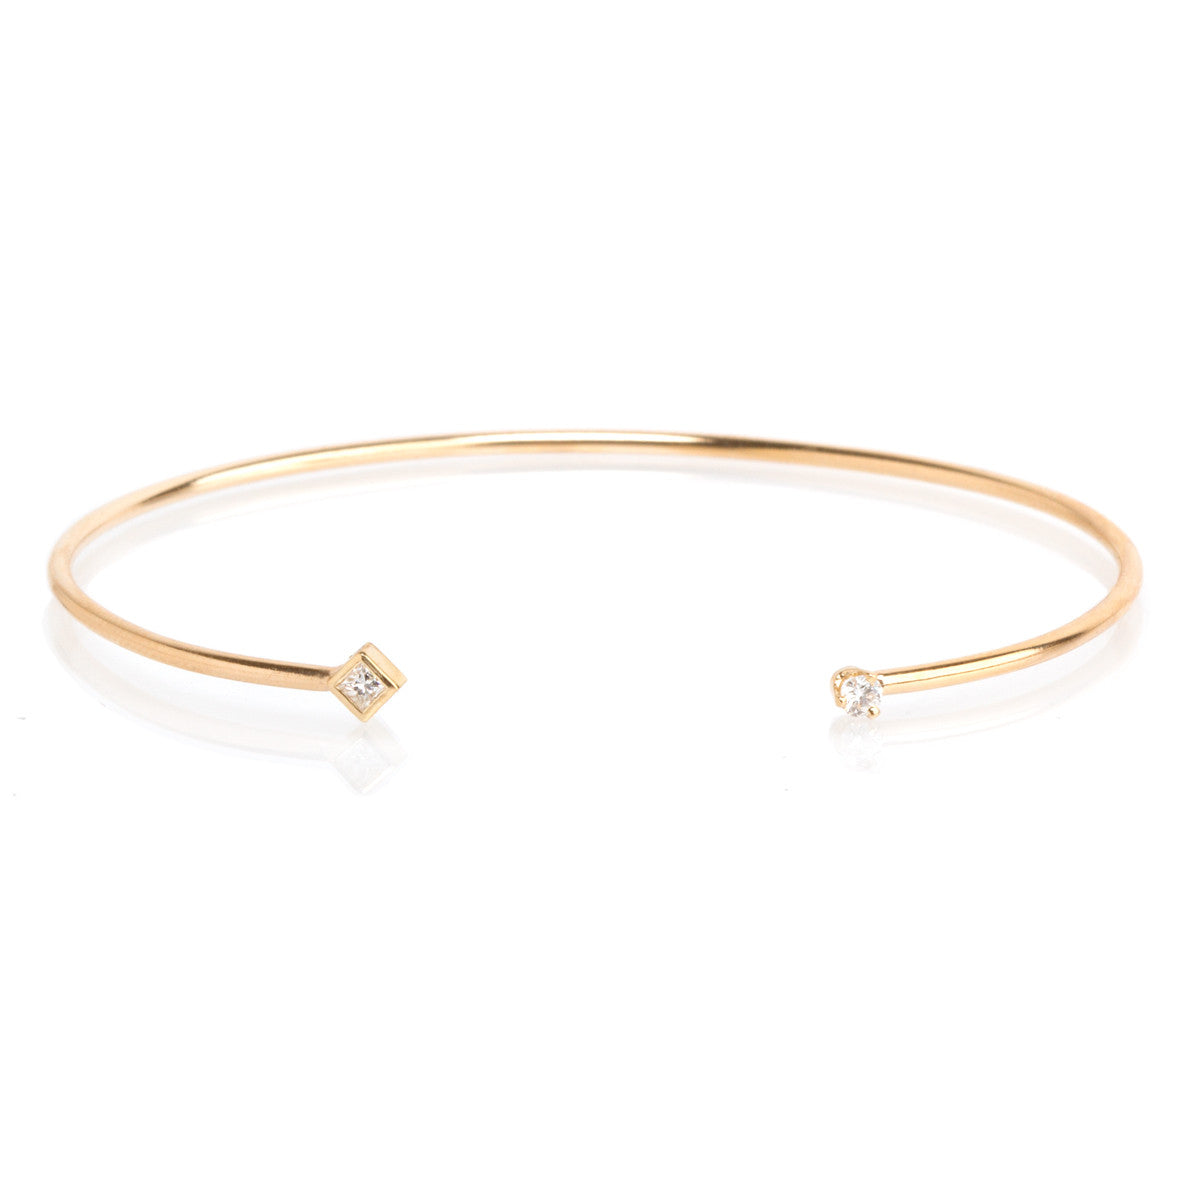 diamond rose half jewelry thin bracelet bangle bangles nicolehd products